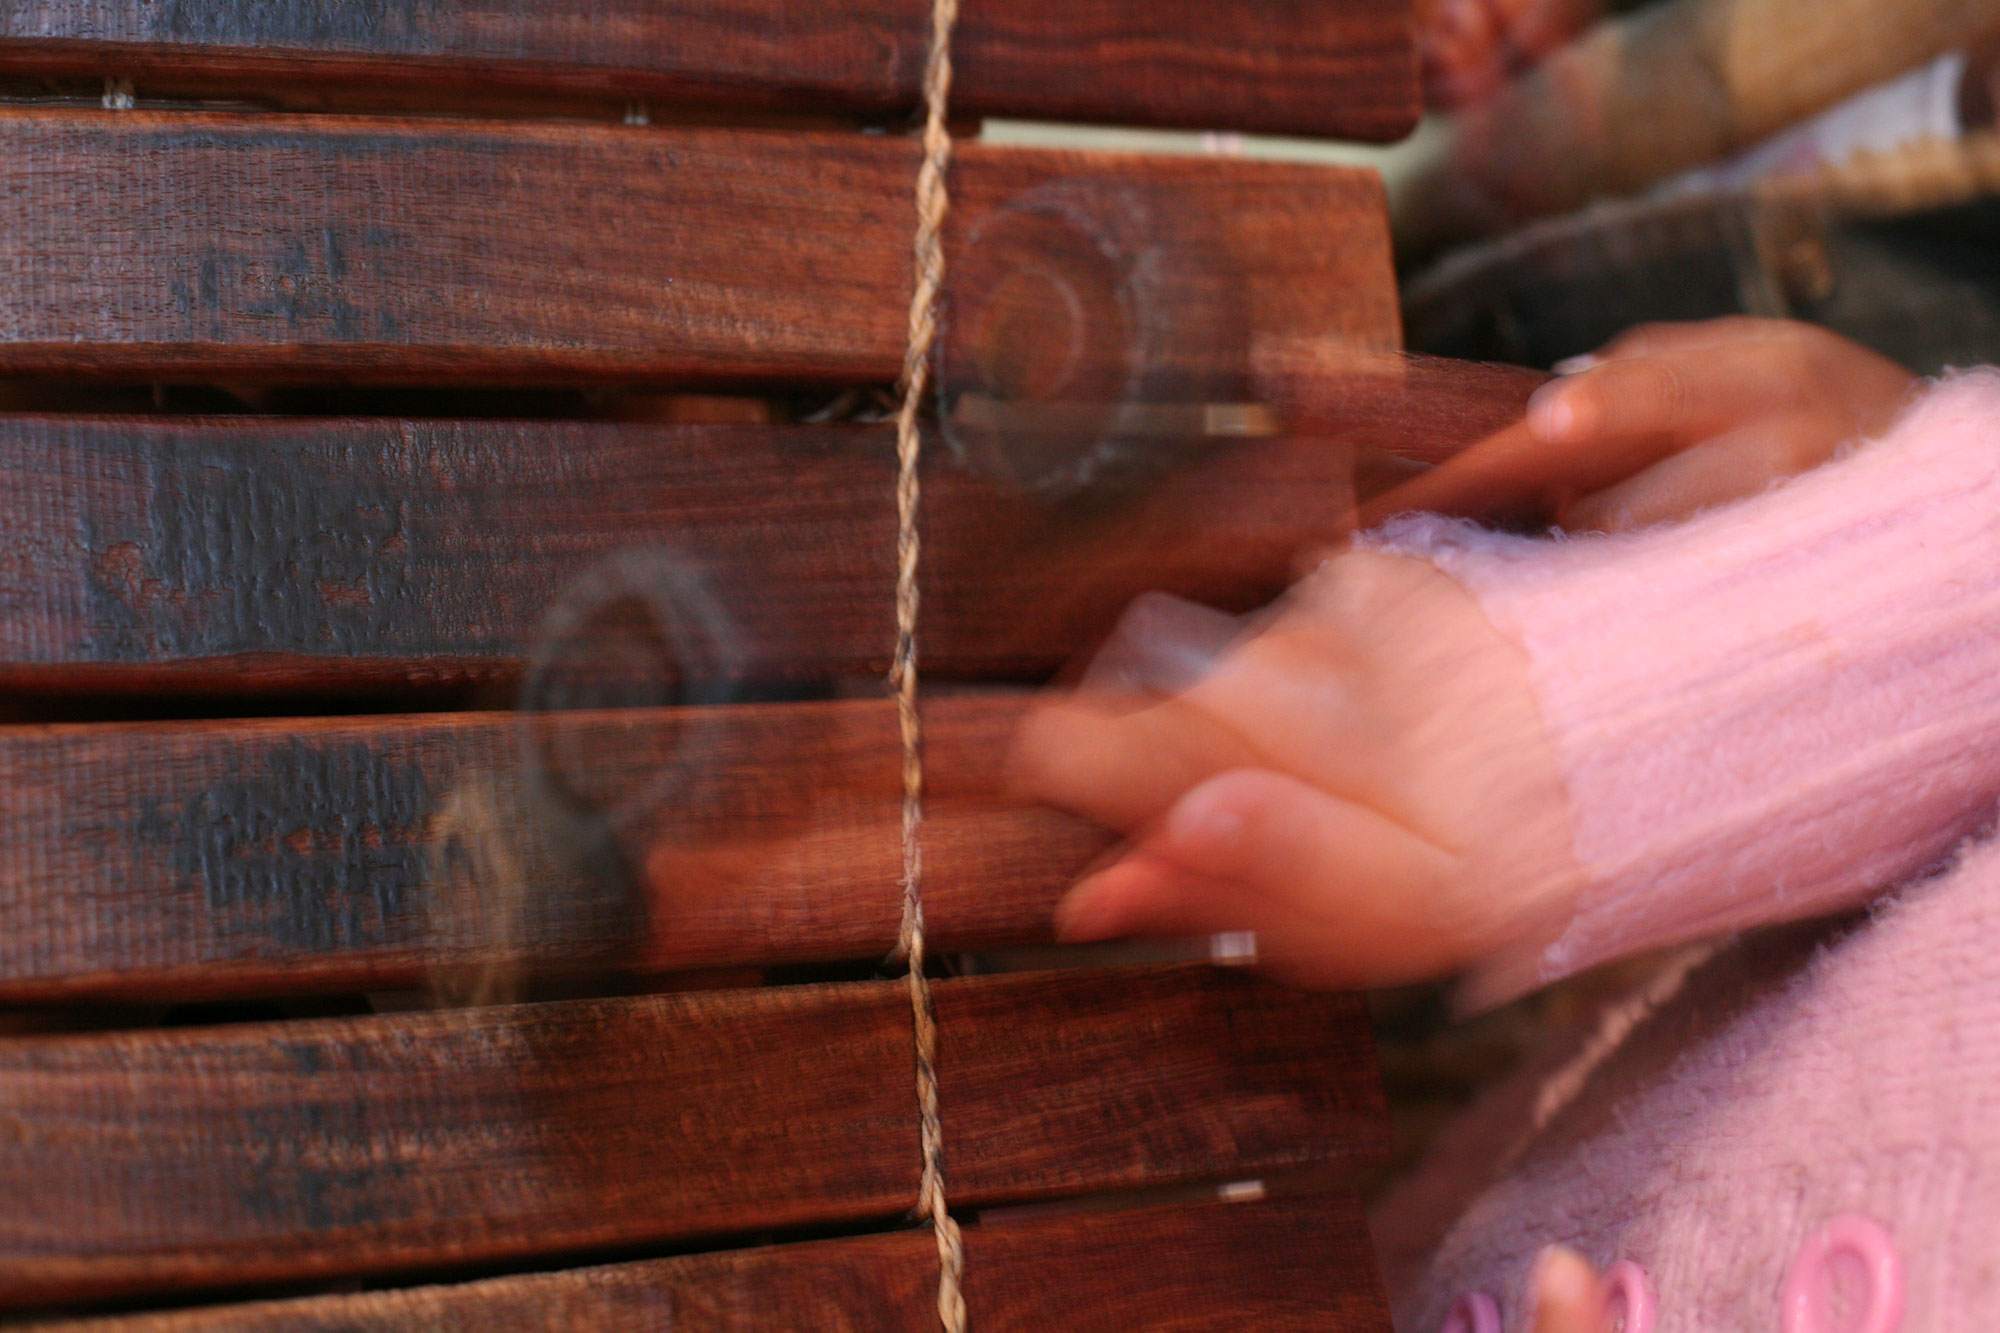 A child's hands are holding beaters to play a slatted wooden musical instrument. They are blurry, as if in rapid motion.